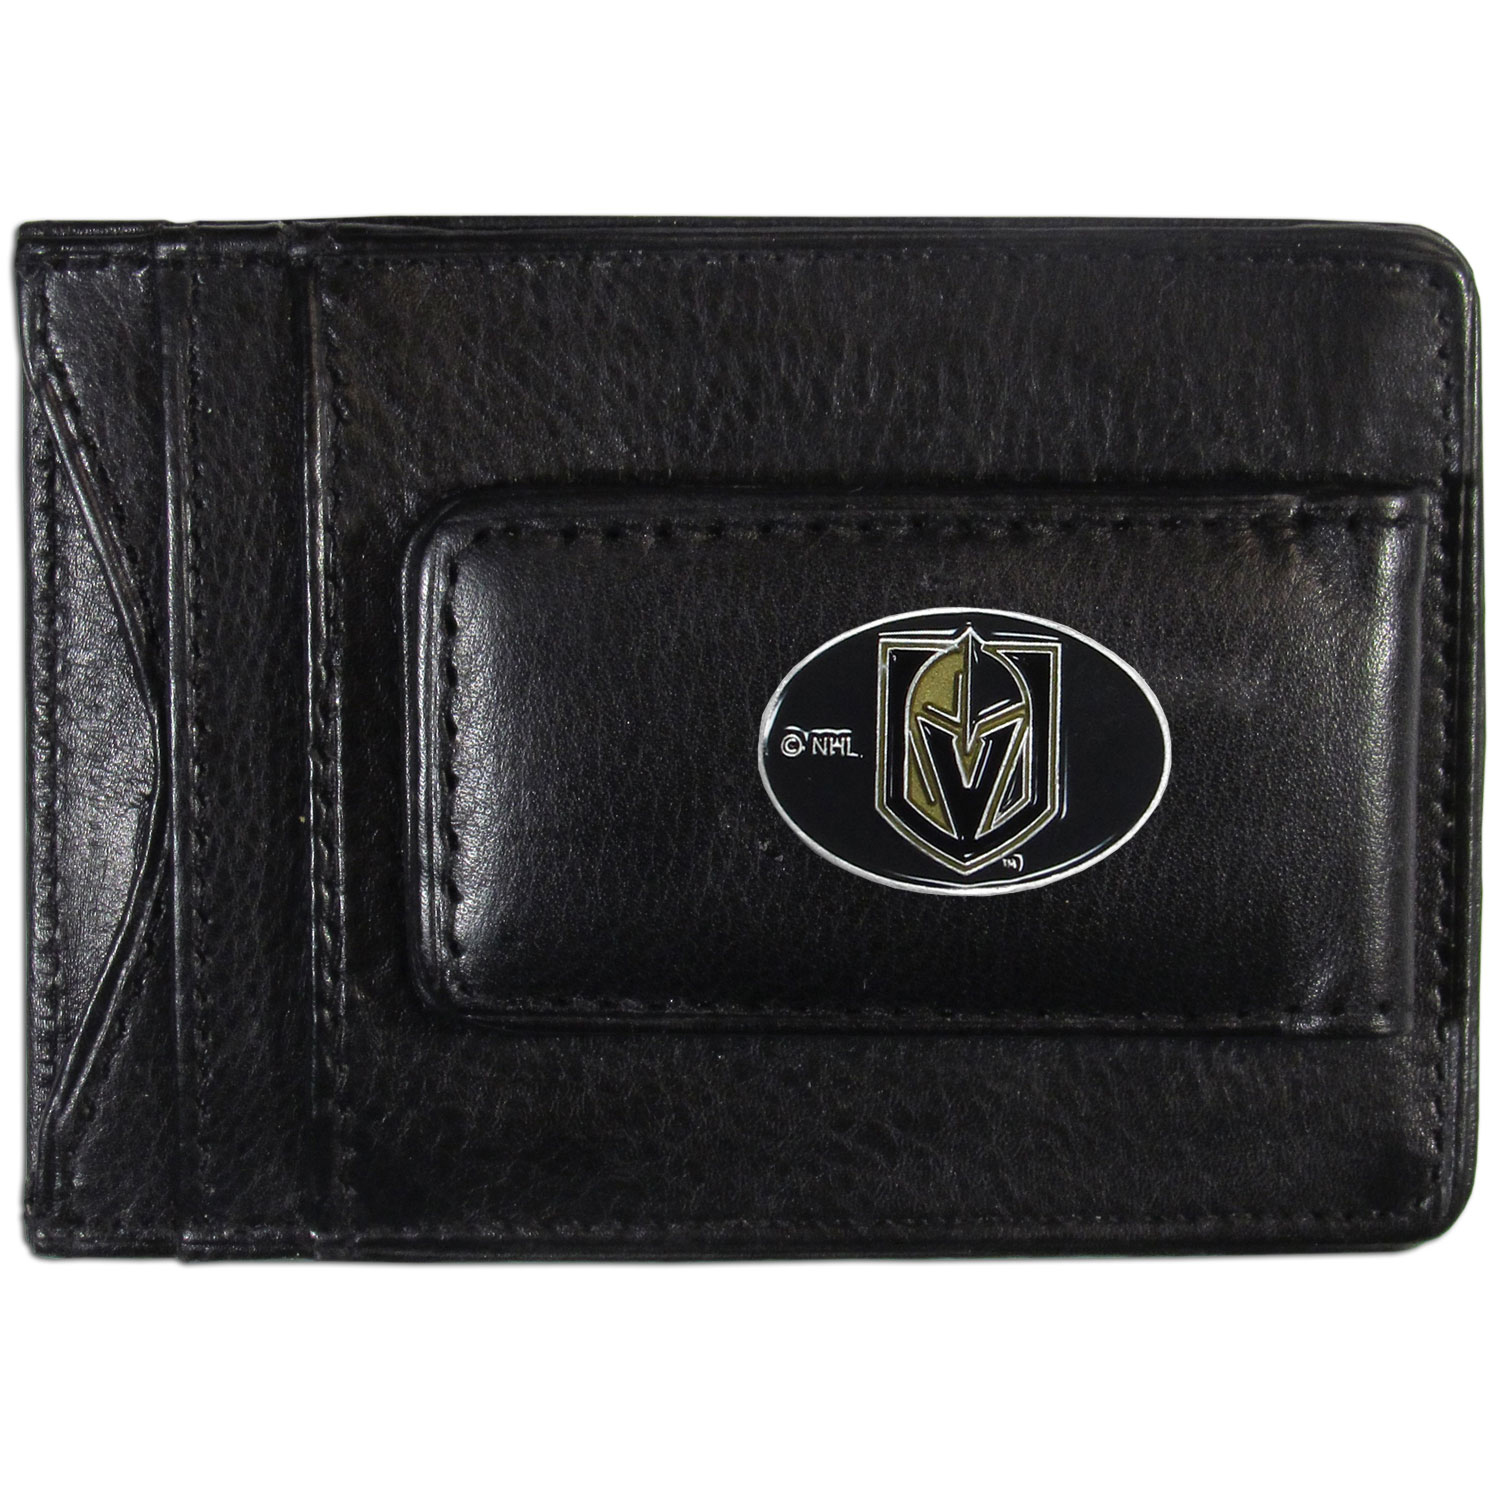 Vegas Golden Knights® Leather Cash & Cardholder - Our Vegas Golden Knights® genuine leather cash & cardholder is a great alternative to the traditional bulky wallet. This compact wallet has credit card slots, windowed ID slot and a magnetic money clip that will not damage your credit cards. The wallet features a metal team emblem.